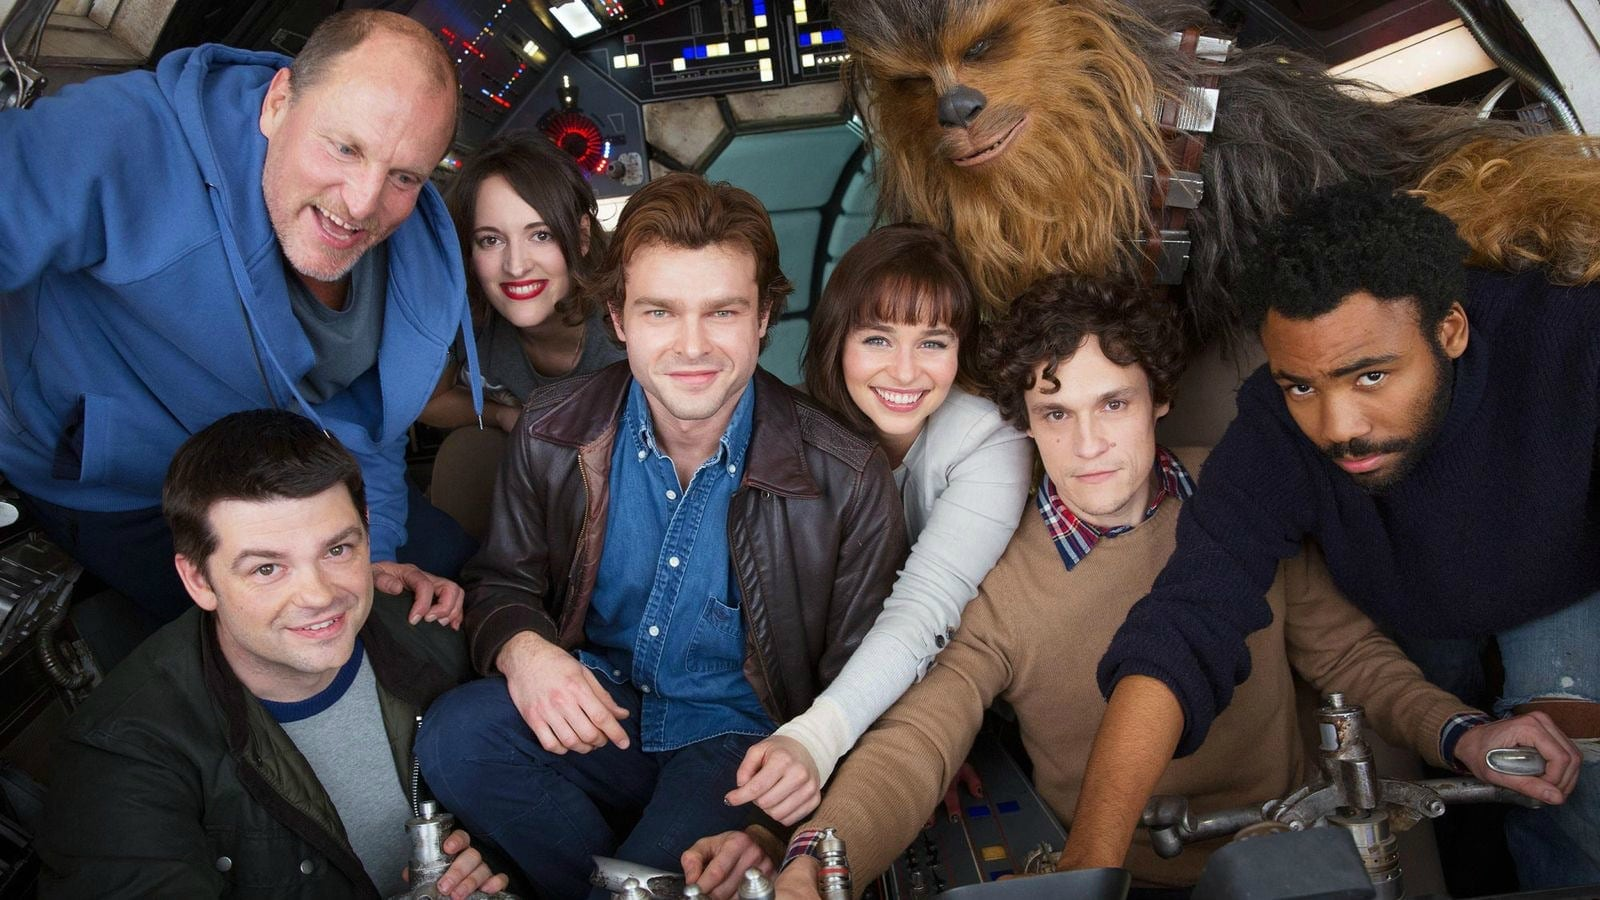 Here's Your First Look at 'Solo: A Star Wars Story'